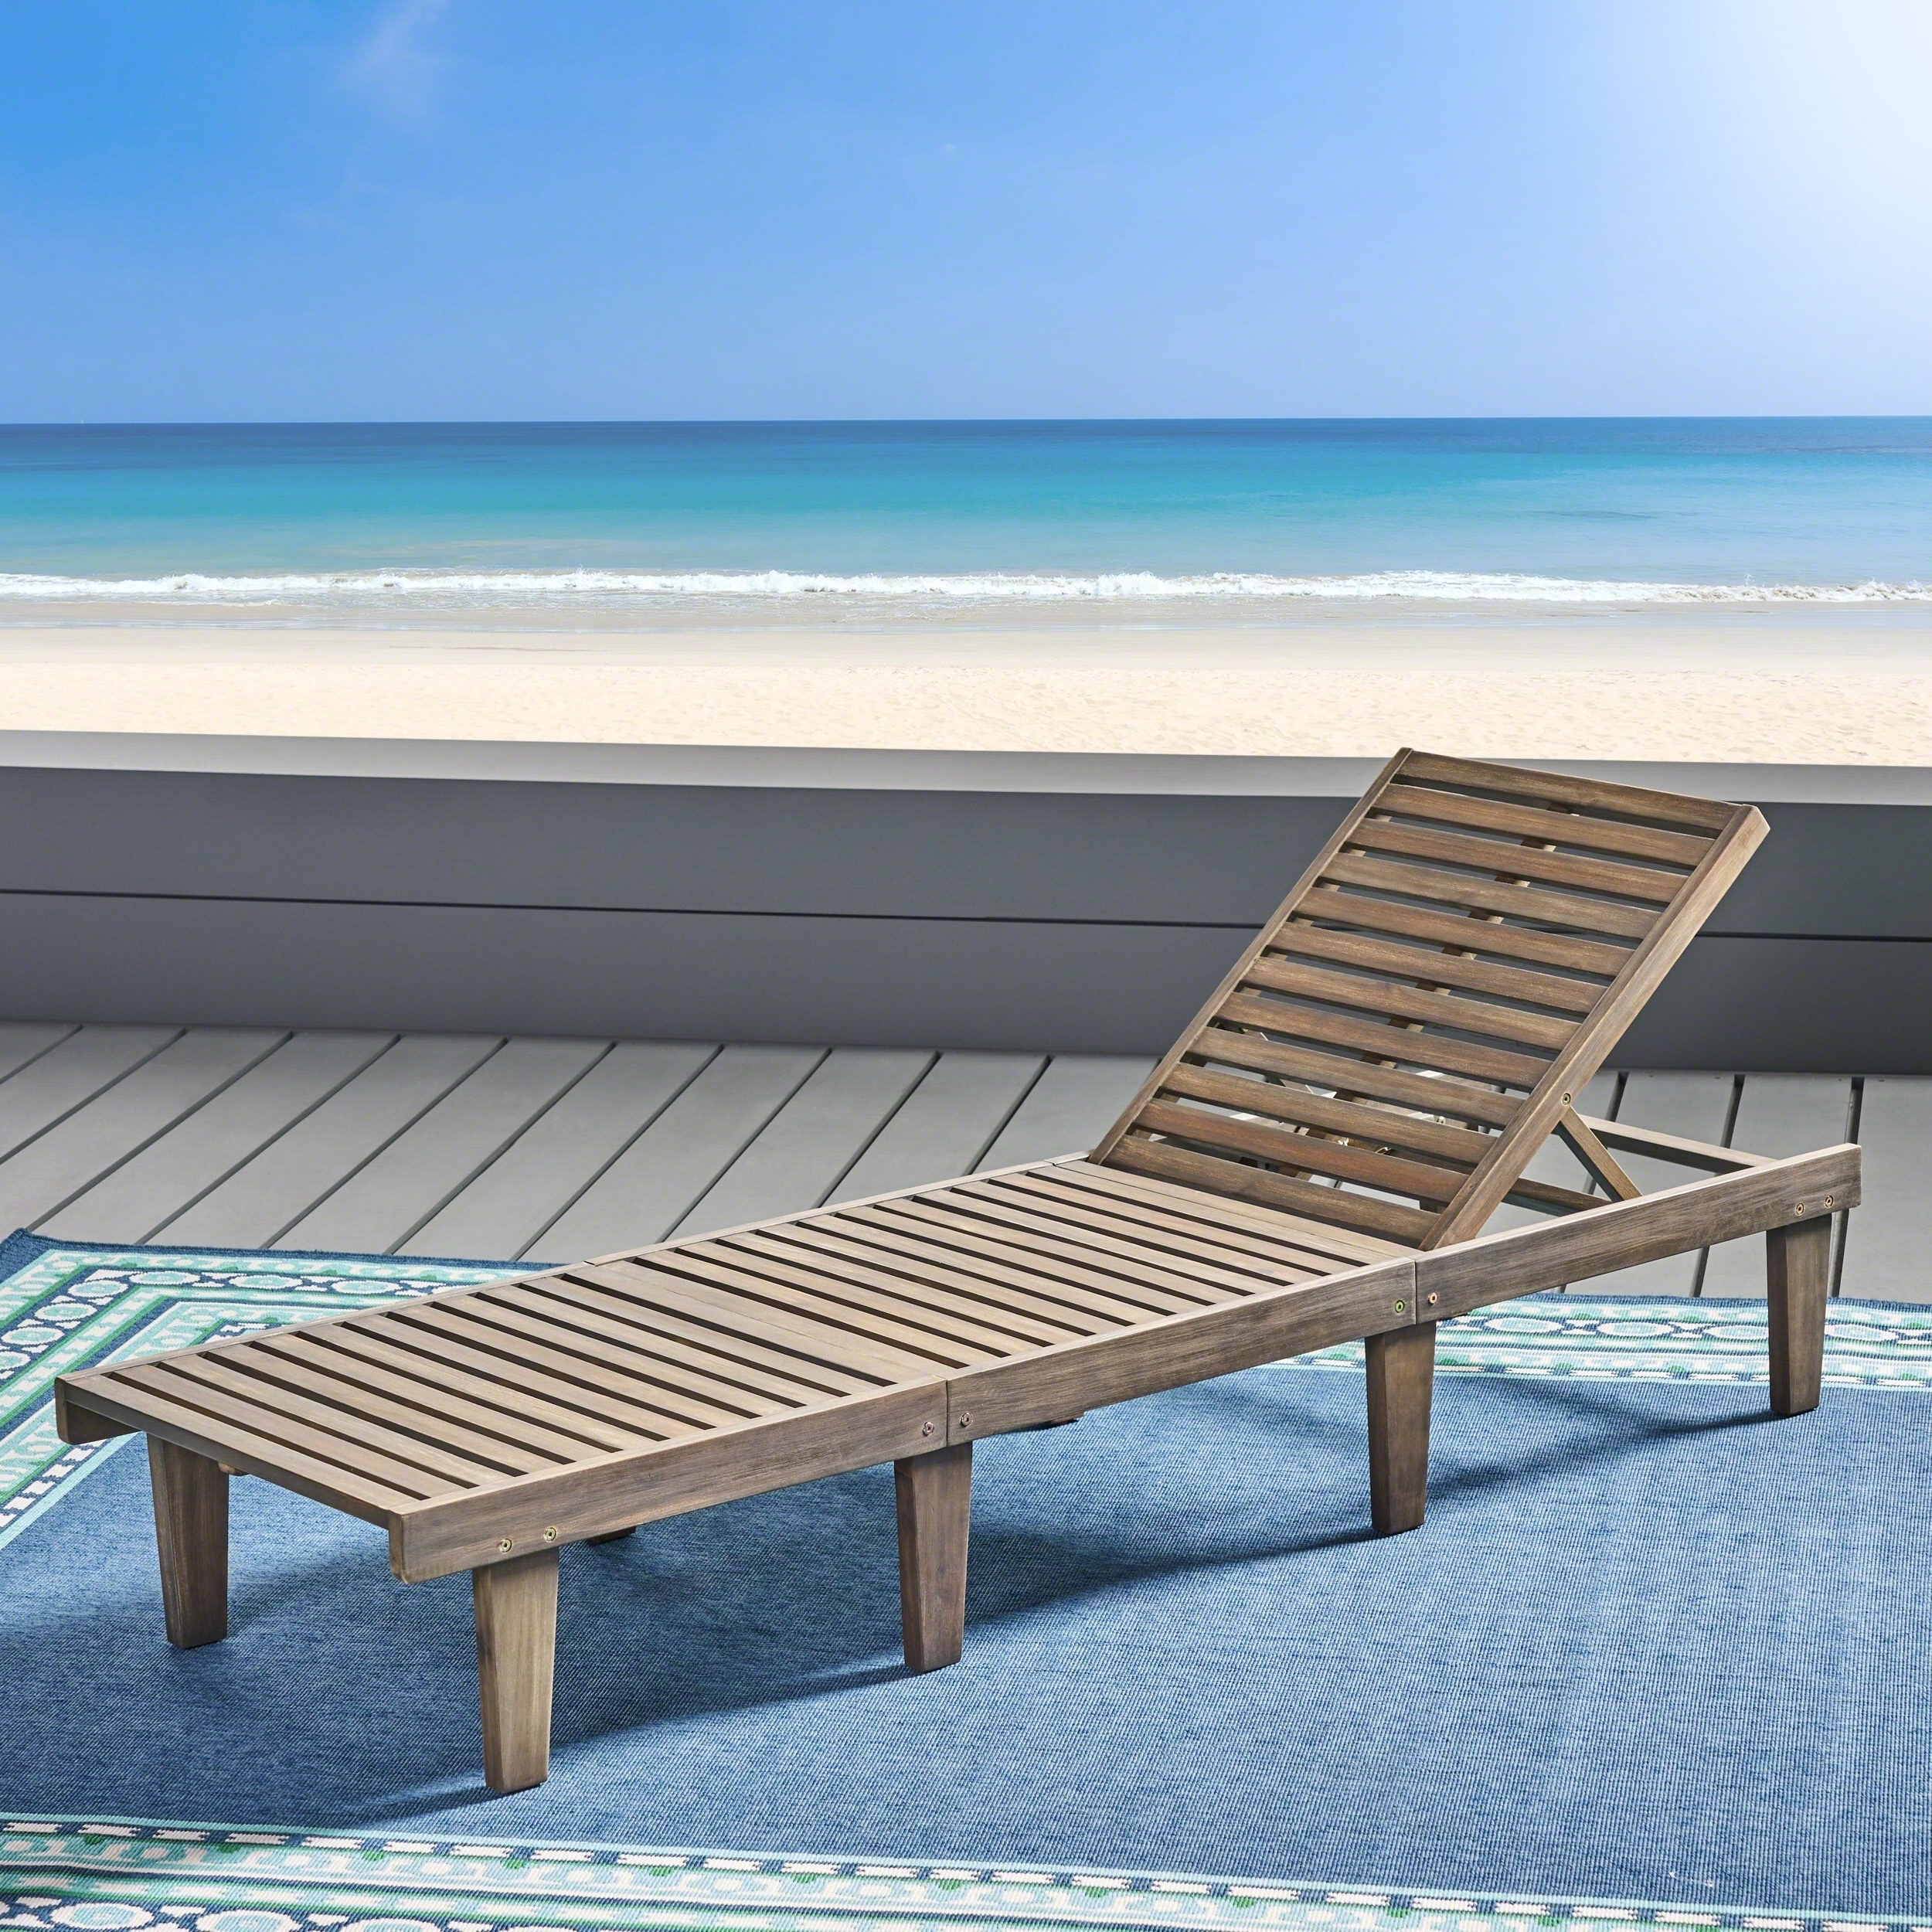 Details About Ariana Acacia Outdoor Wood Chaise Lounge With Cushion By Intended For Well Known Oudoor Modern Acacia Wood Chaise Lounges With Cushion (View 10 of 25)